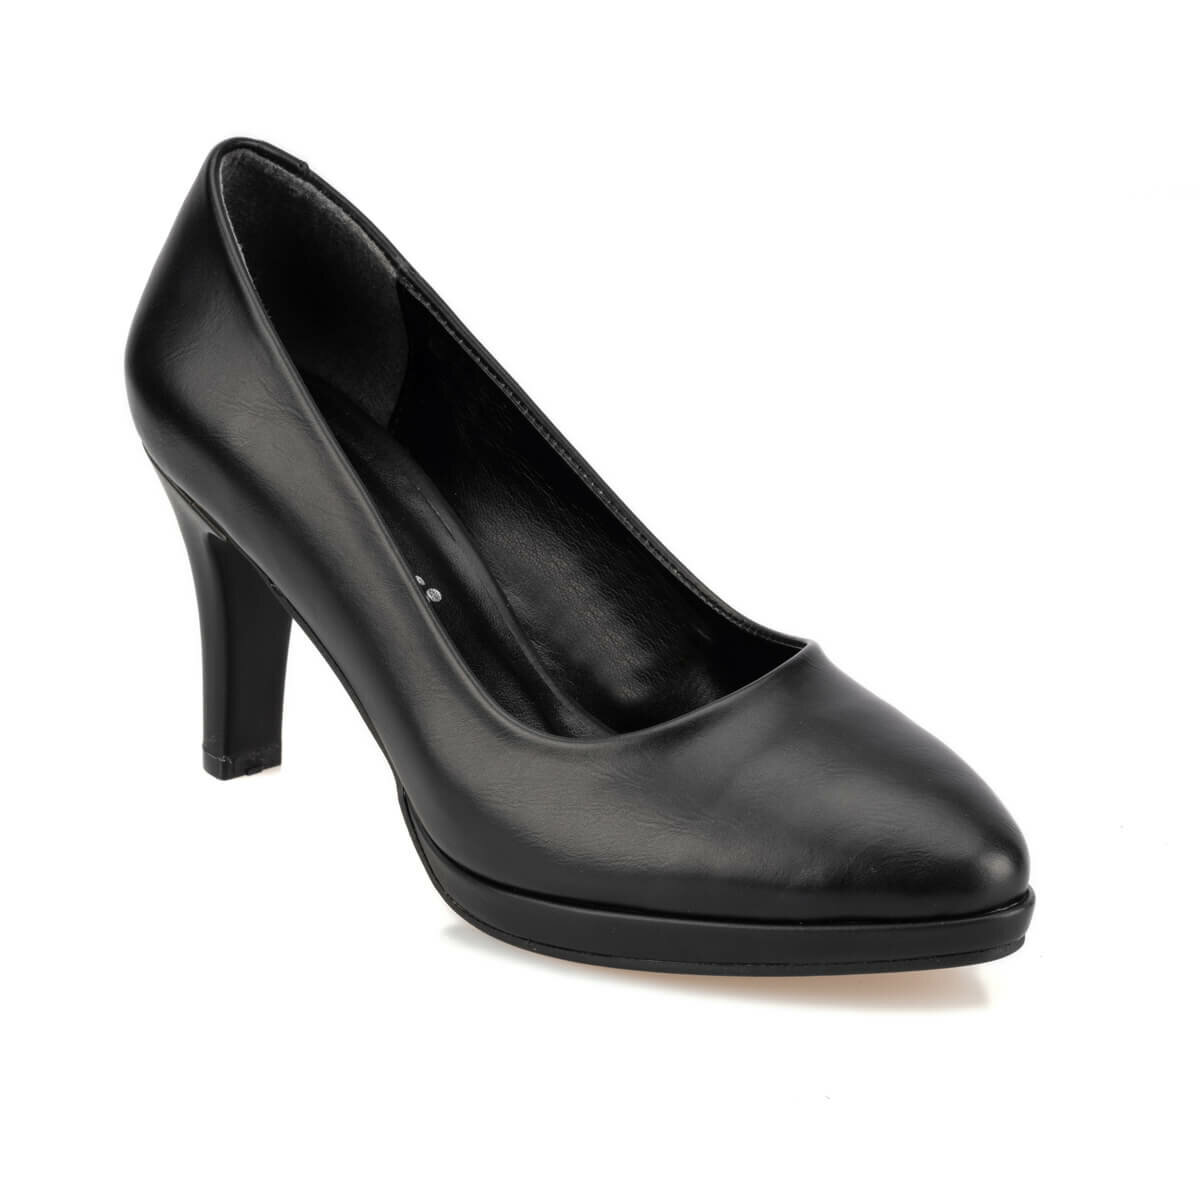 FLO 92.314106.Z Black Women Gova Shoes Polaris